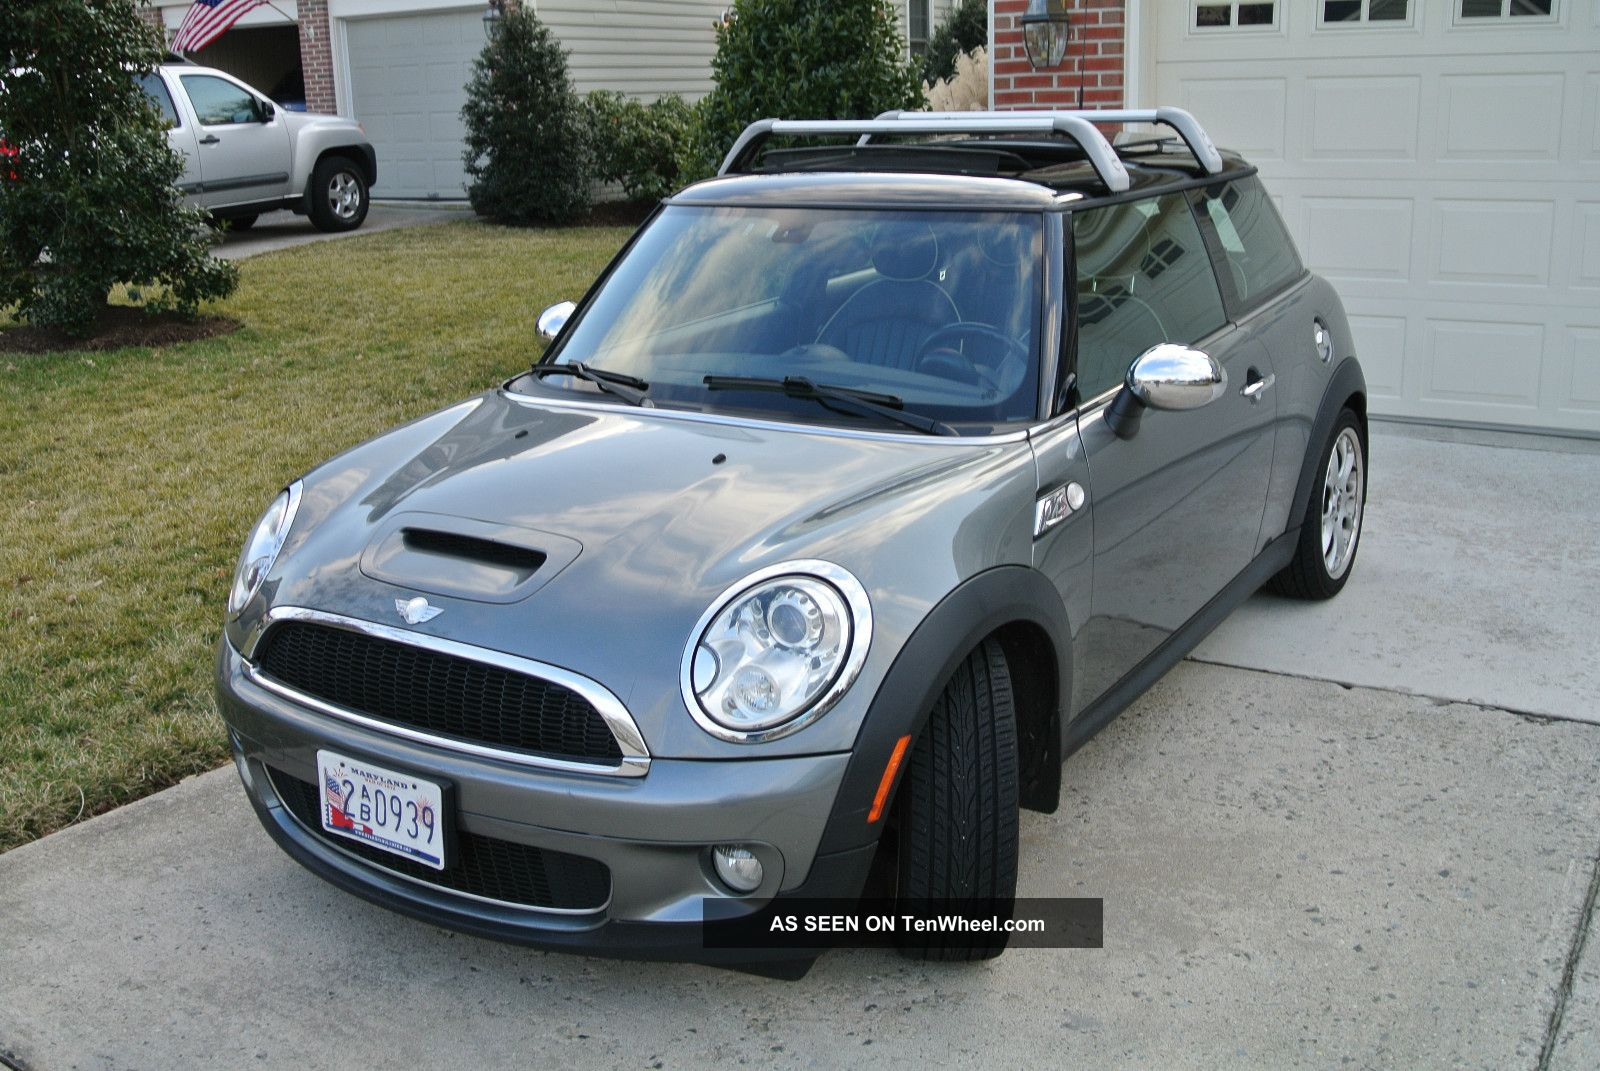 2007 mini cooper s turbo 6 speed. Black Bedroom Furniture Sets. Home Design Ideas